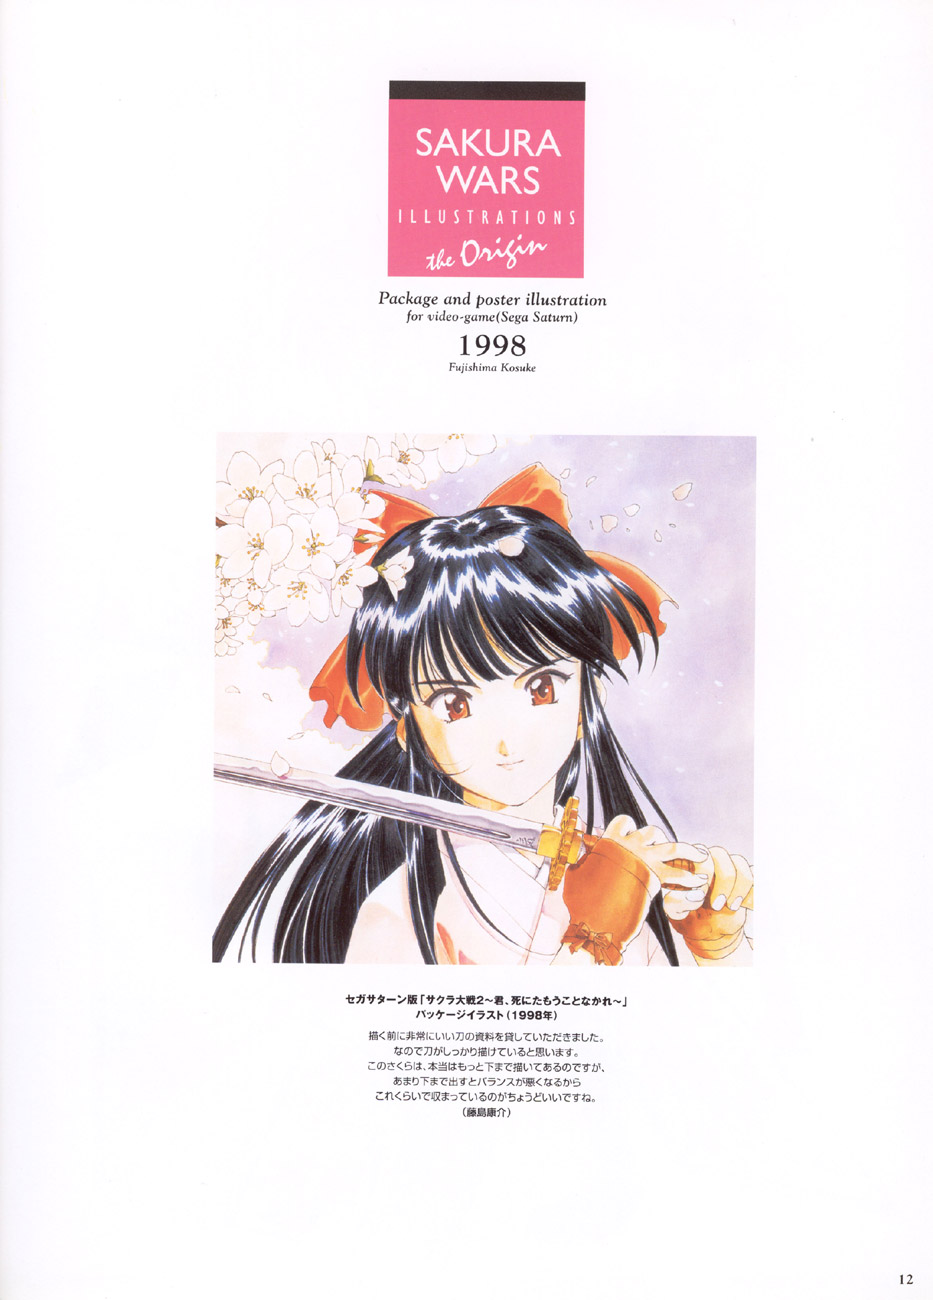 Sakura Wars illustrations: the Origin + Tribute image by Kosuke Fujishima